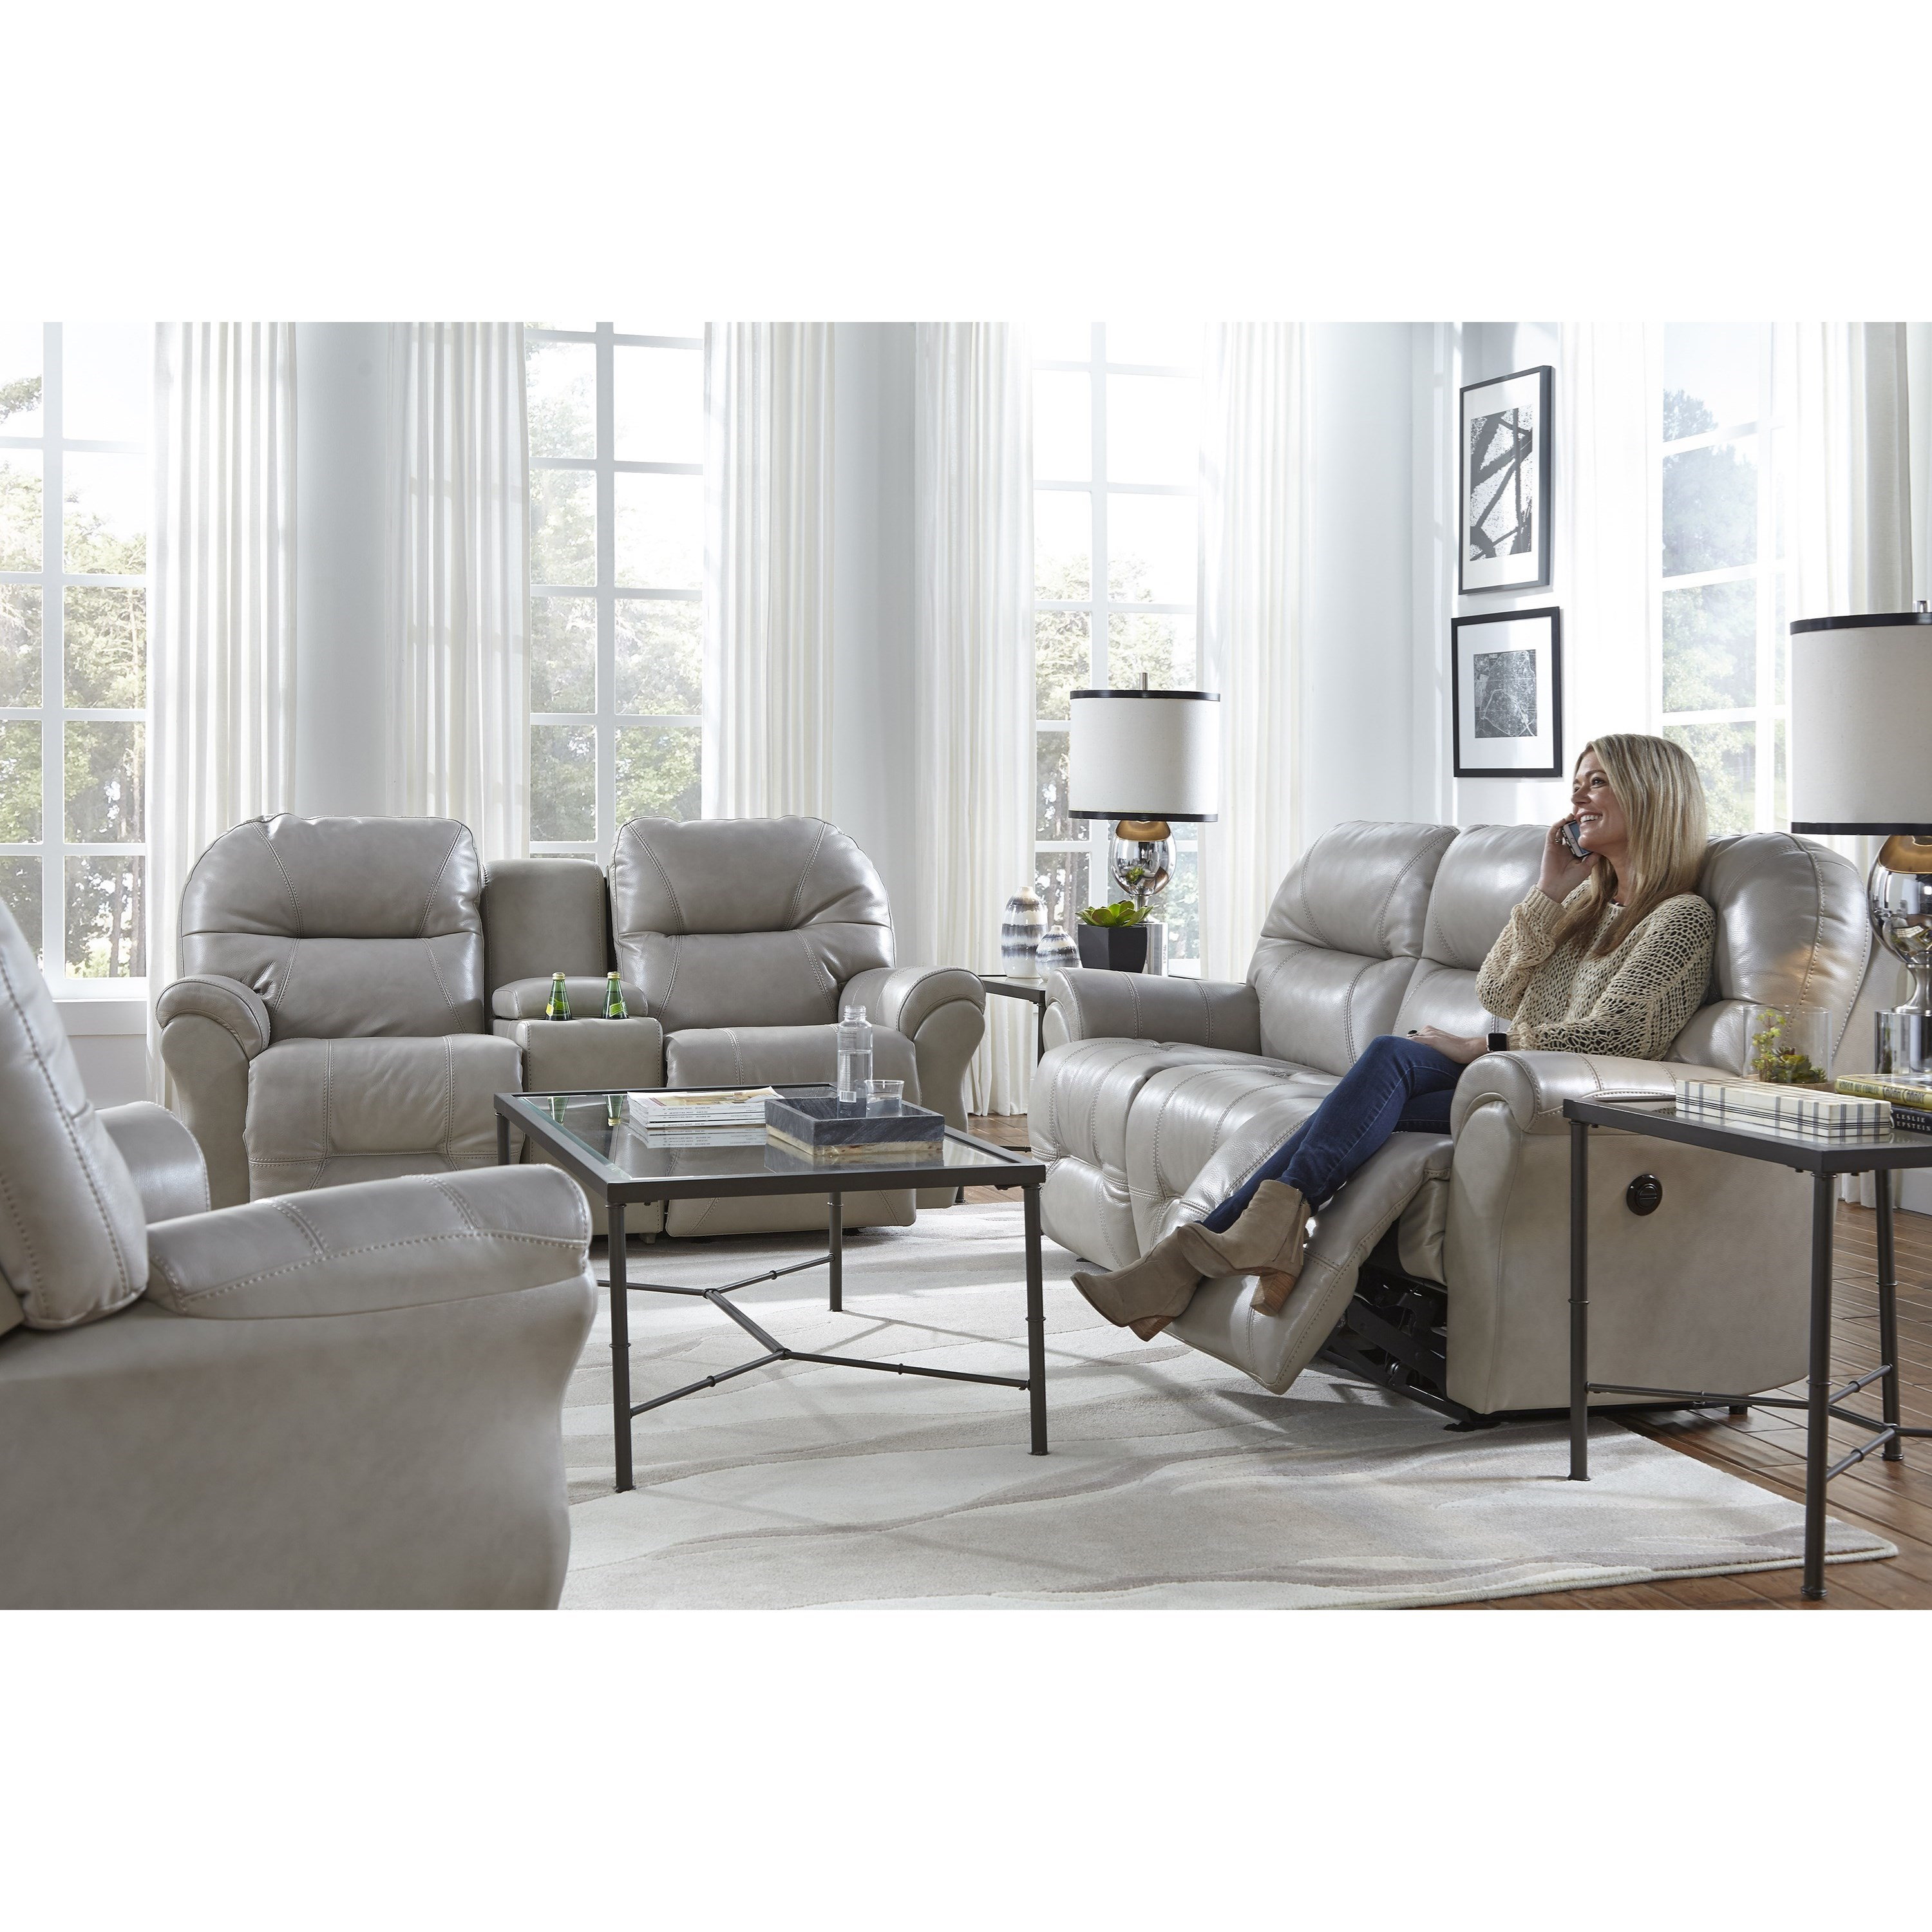 Bodie Reclining Living Room Group by Best Home Furnishings at Zak's Home